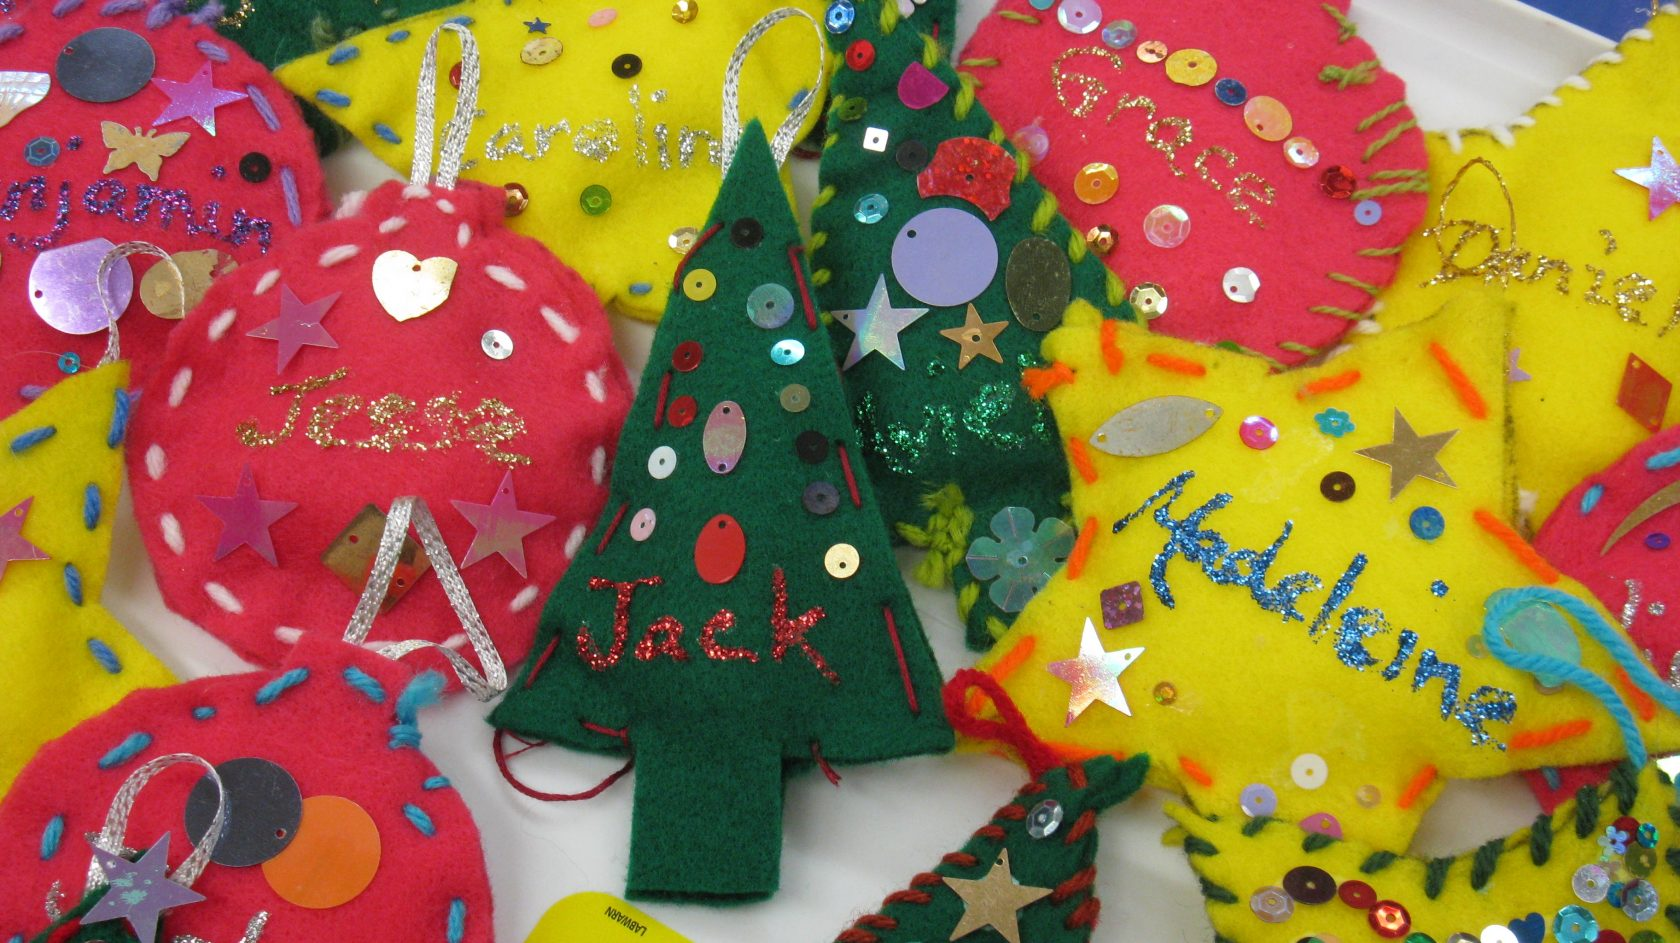 Westfield High School students in Mrs. West and Ms. Picard's art classes, as well as their after- school Art Club, have been busy this week making ornaments in memory of the students and teachers from Sandy Hook Elementary School.  Upon listening and hearing that they needed ornaments for a tree in memory of those killed, our students were anxious to do what they could to show that they care.  Some students even made ornaments at home to be delivered.  Mrs. Drewnowski created a giant card which was signed by all the students with thoughtful wishes during this extremely difficult time.  Our students were proud to be a part of this community service project, and in turn, we are extremely proud of them.  (Photo submitted)